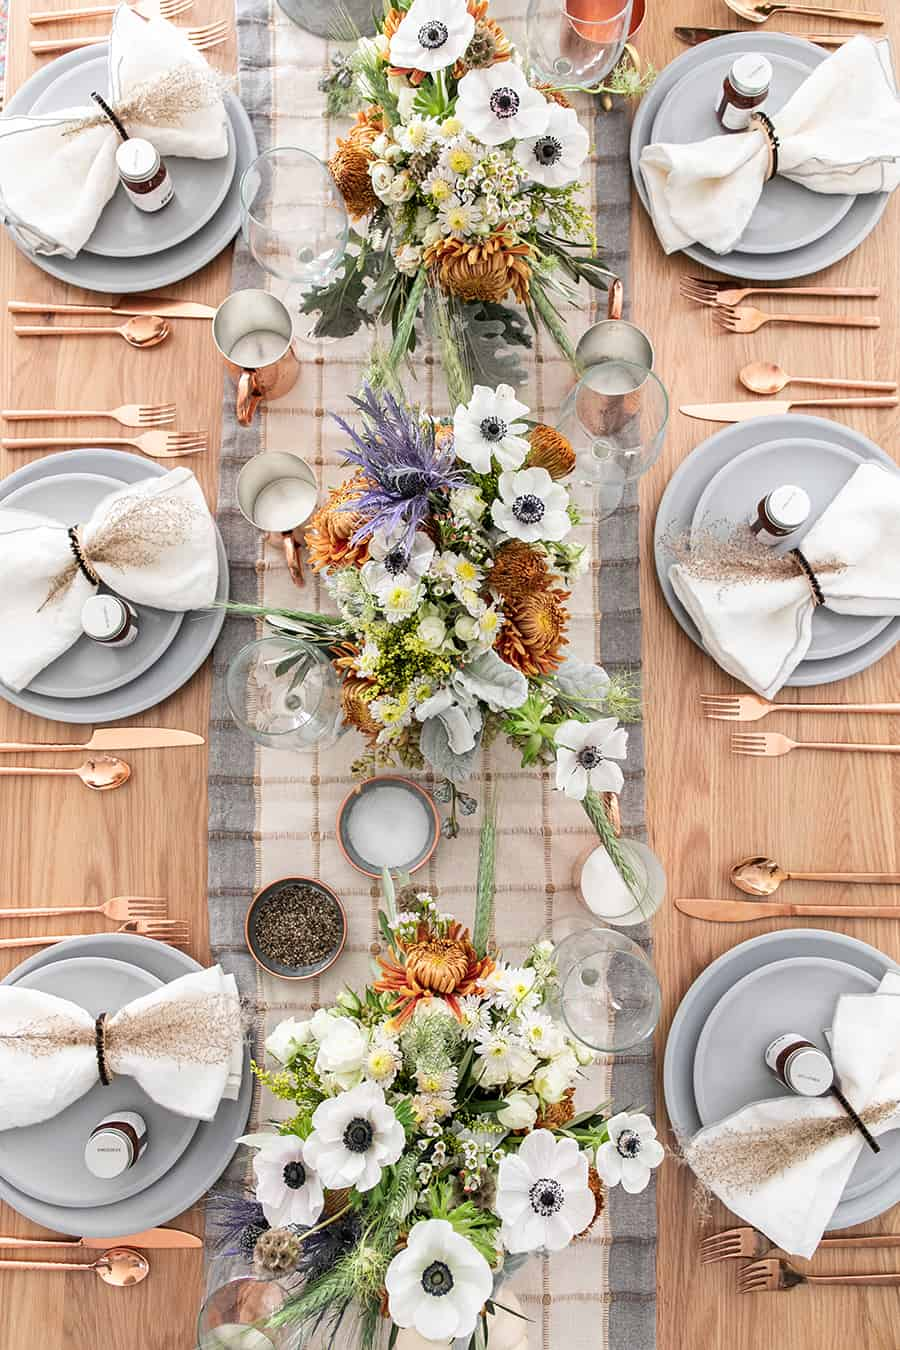 Overhead table with flowers, table runner, napkins and plates.